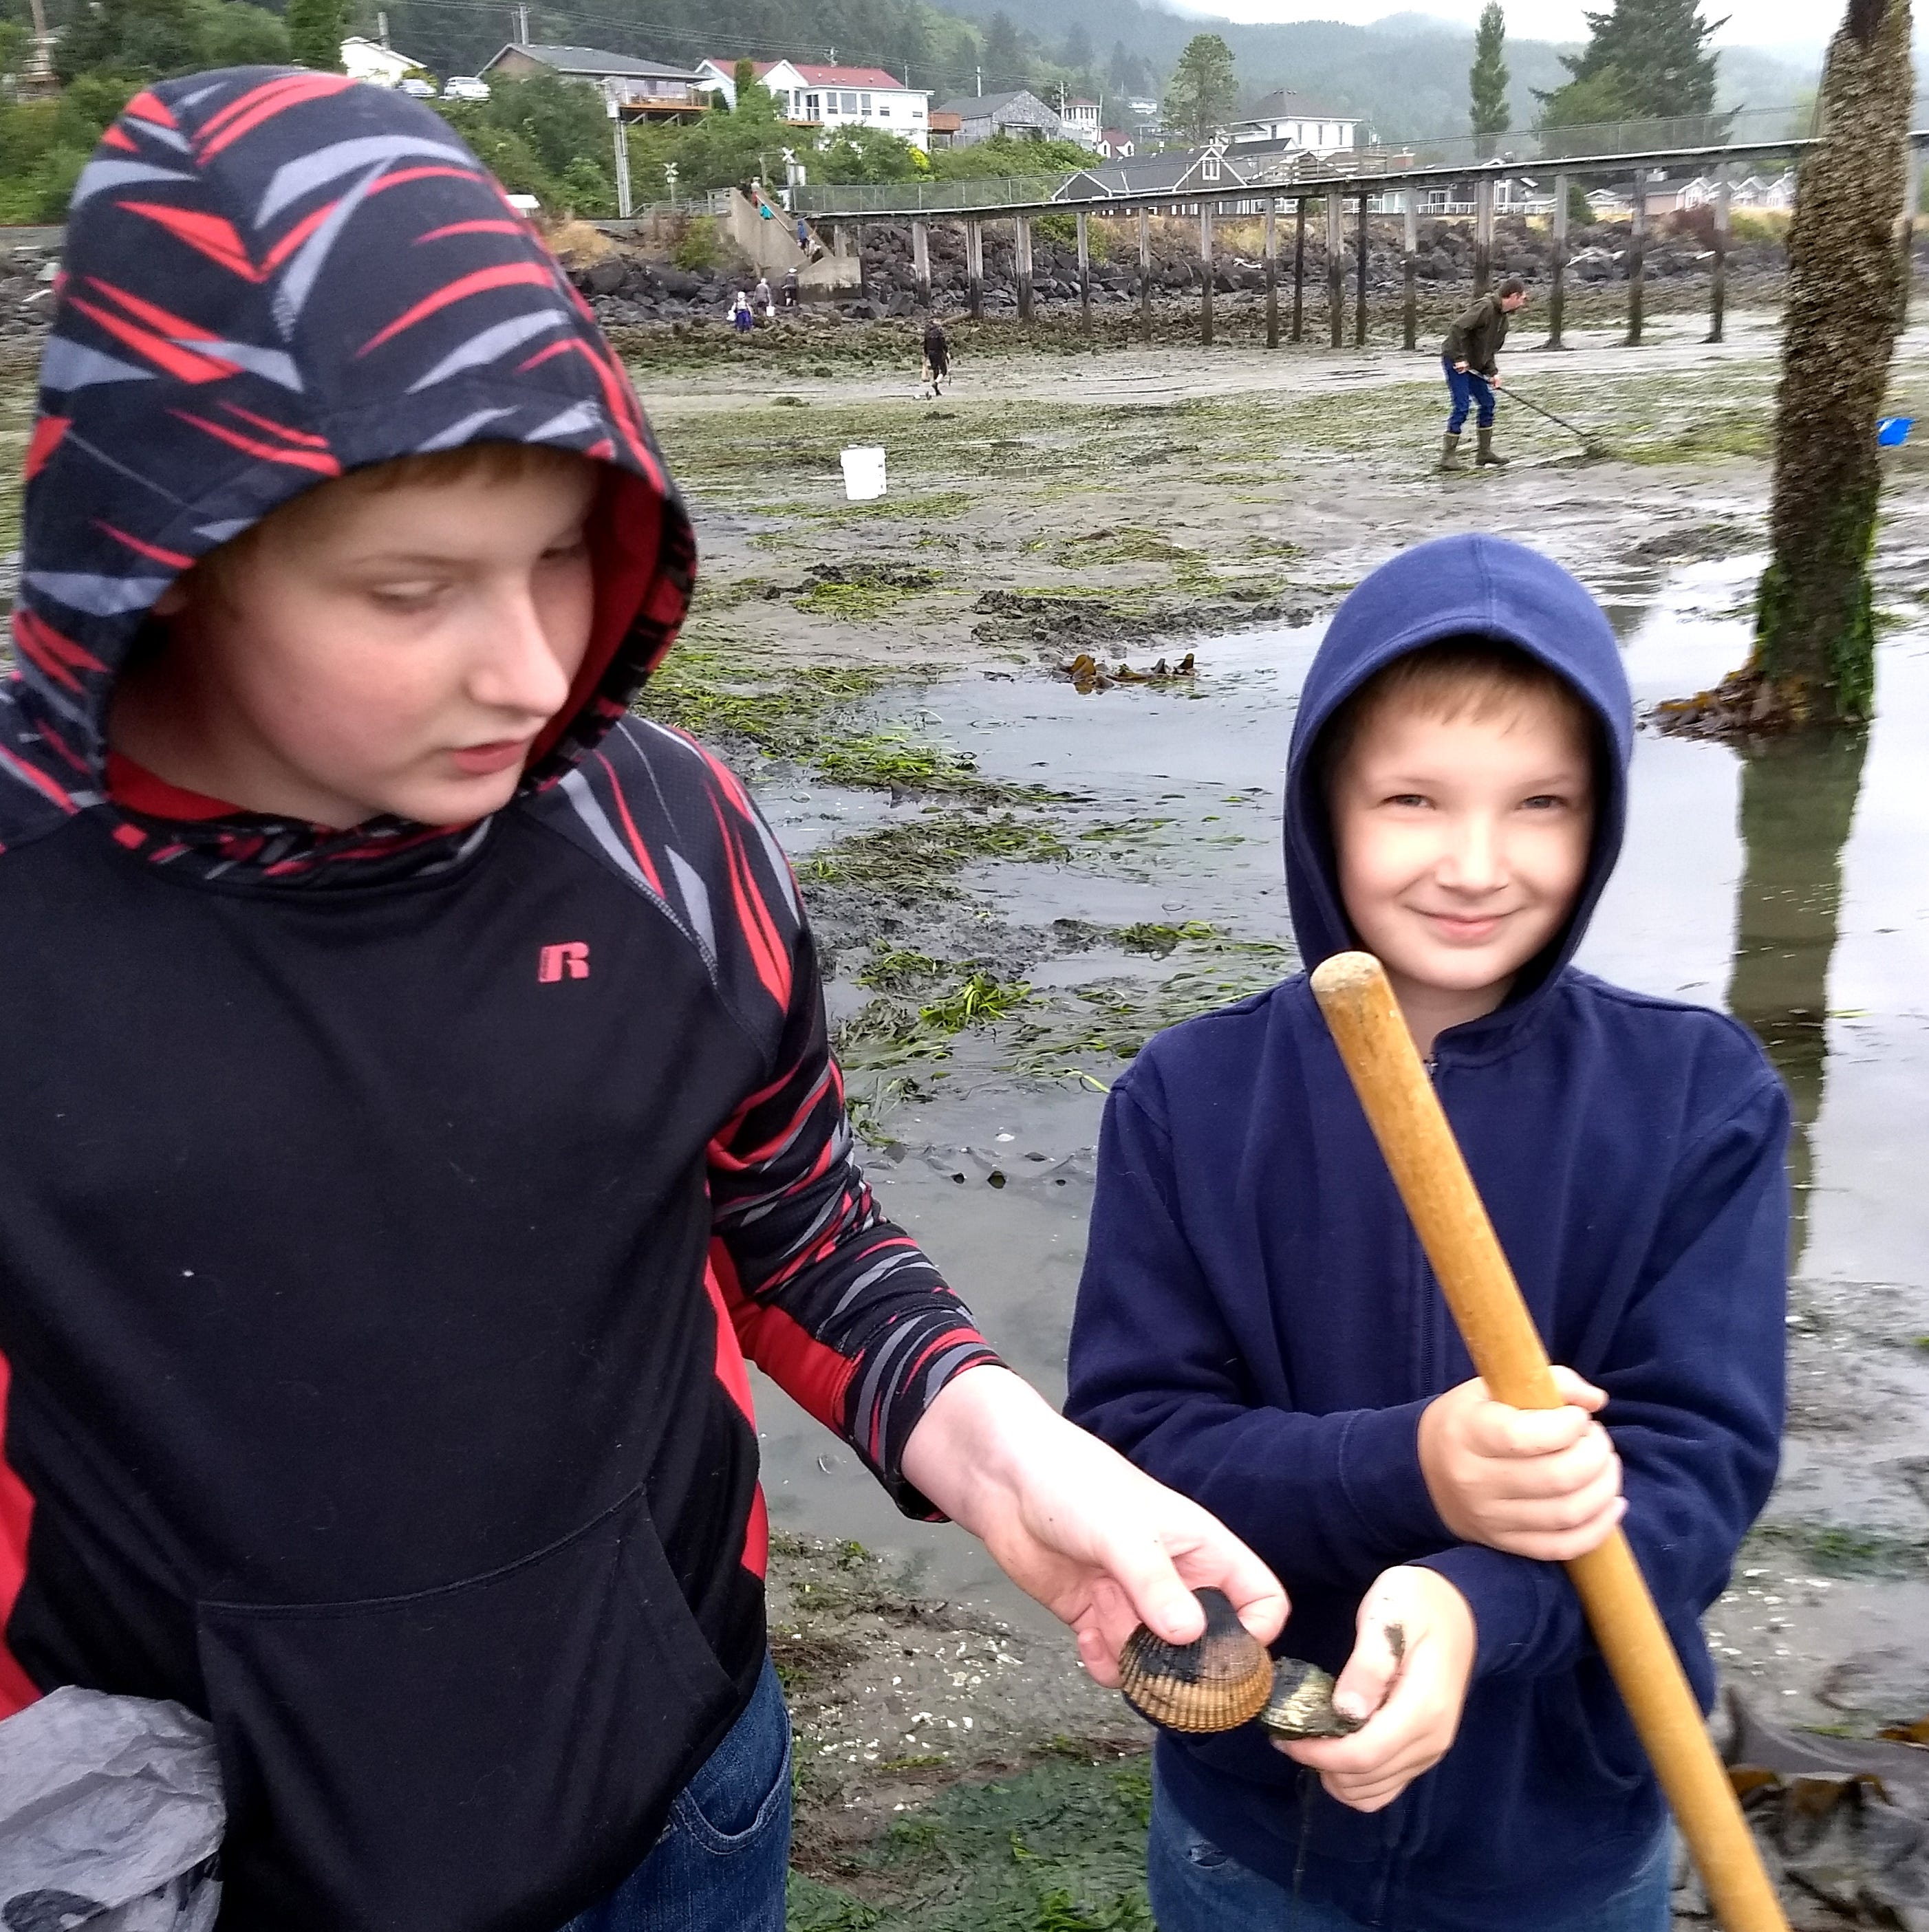 Miller: Clamming is fun and educational for kids